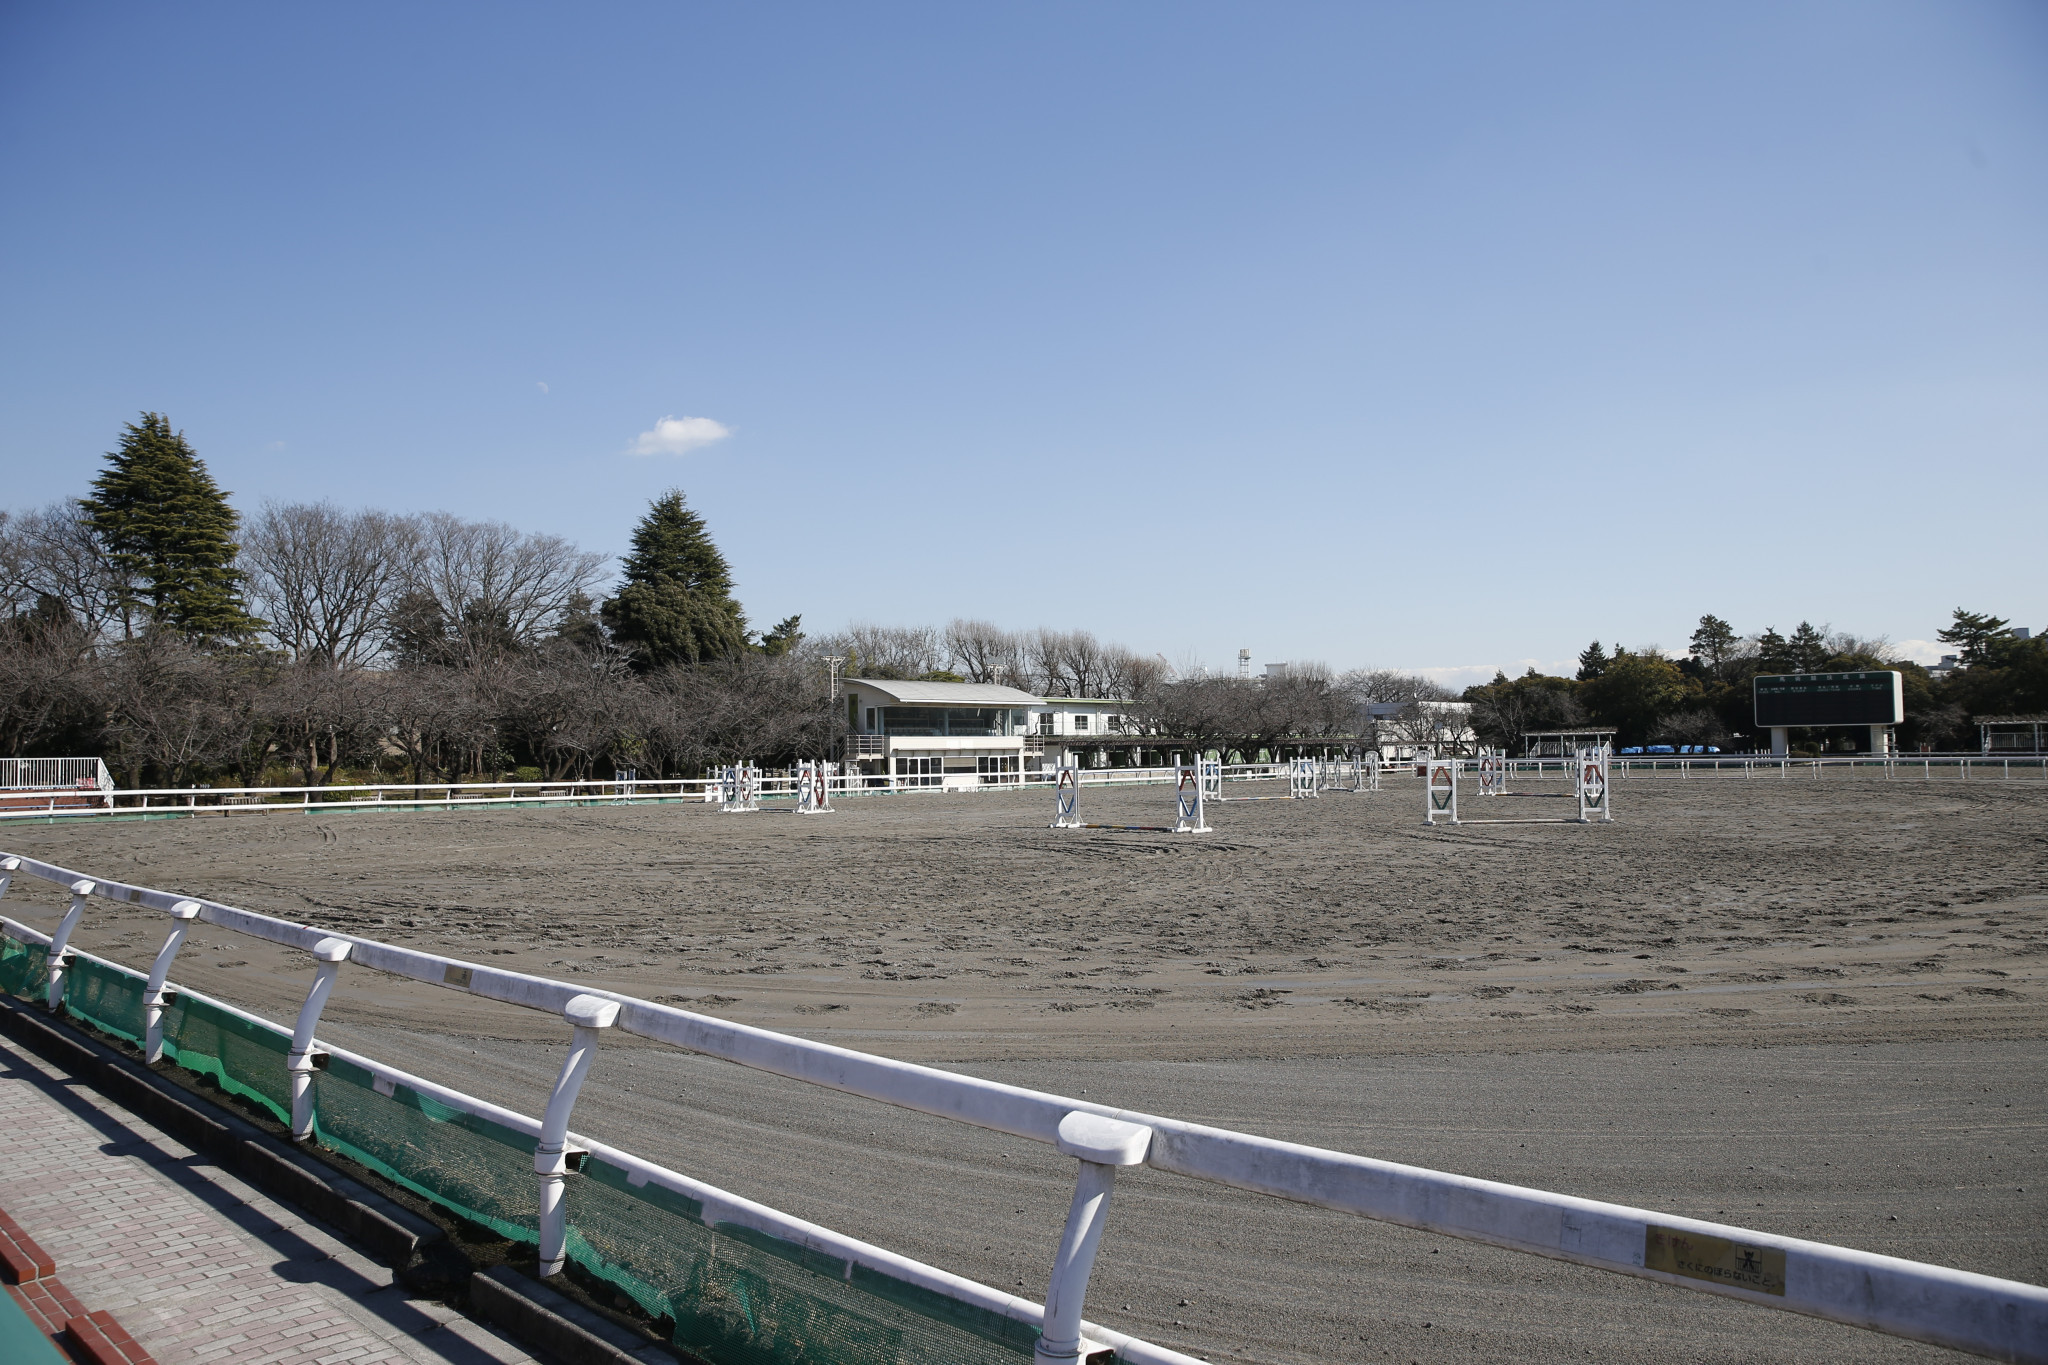 The Equestrian Park is one of several venues due to be toured by the IOC Coordination Commission ©Tokyo 2020